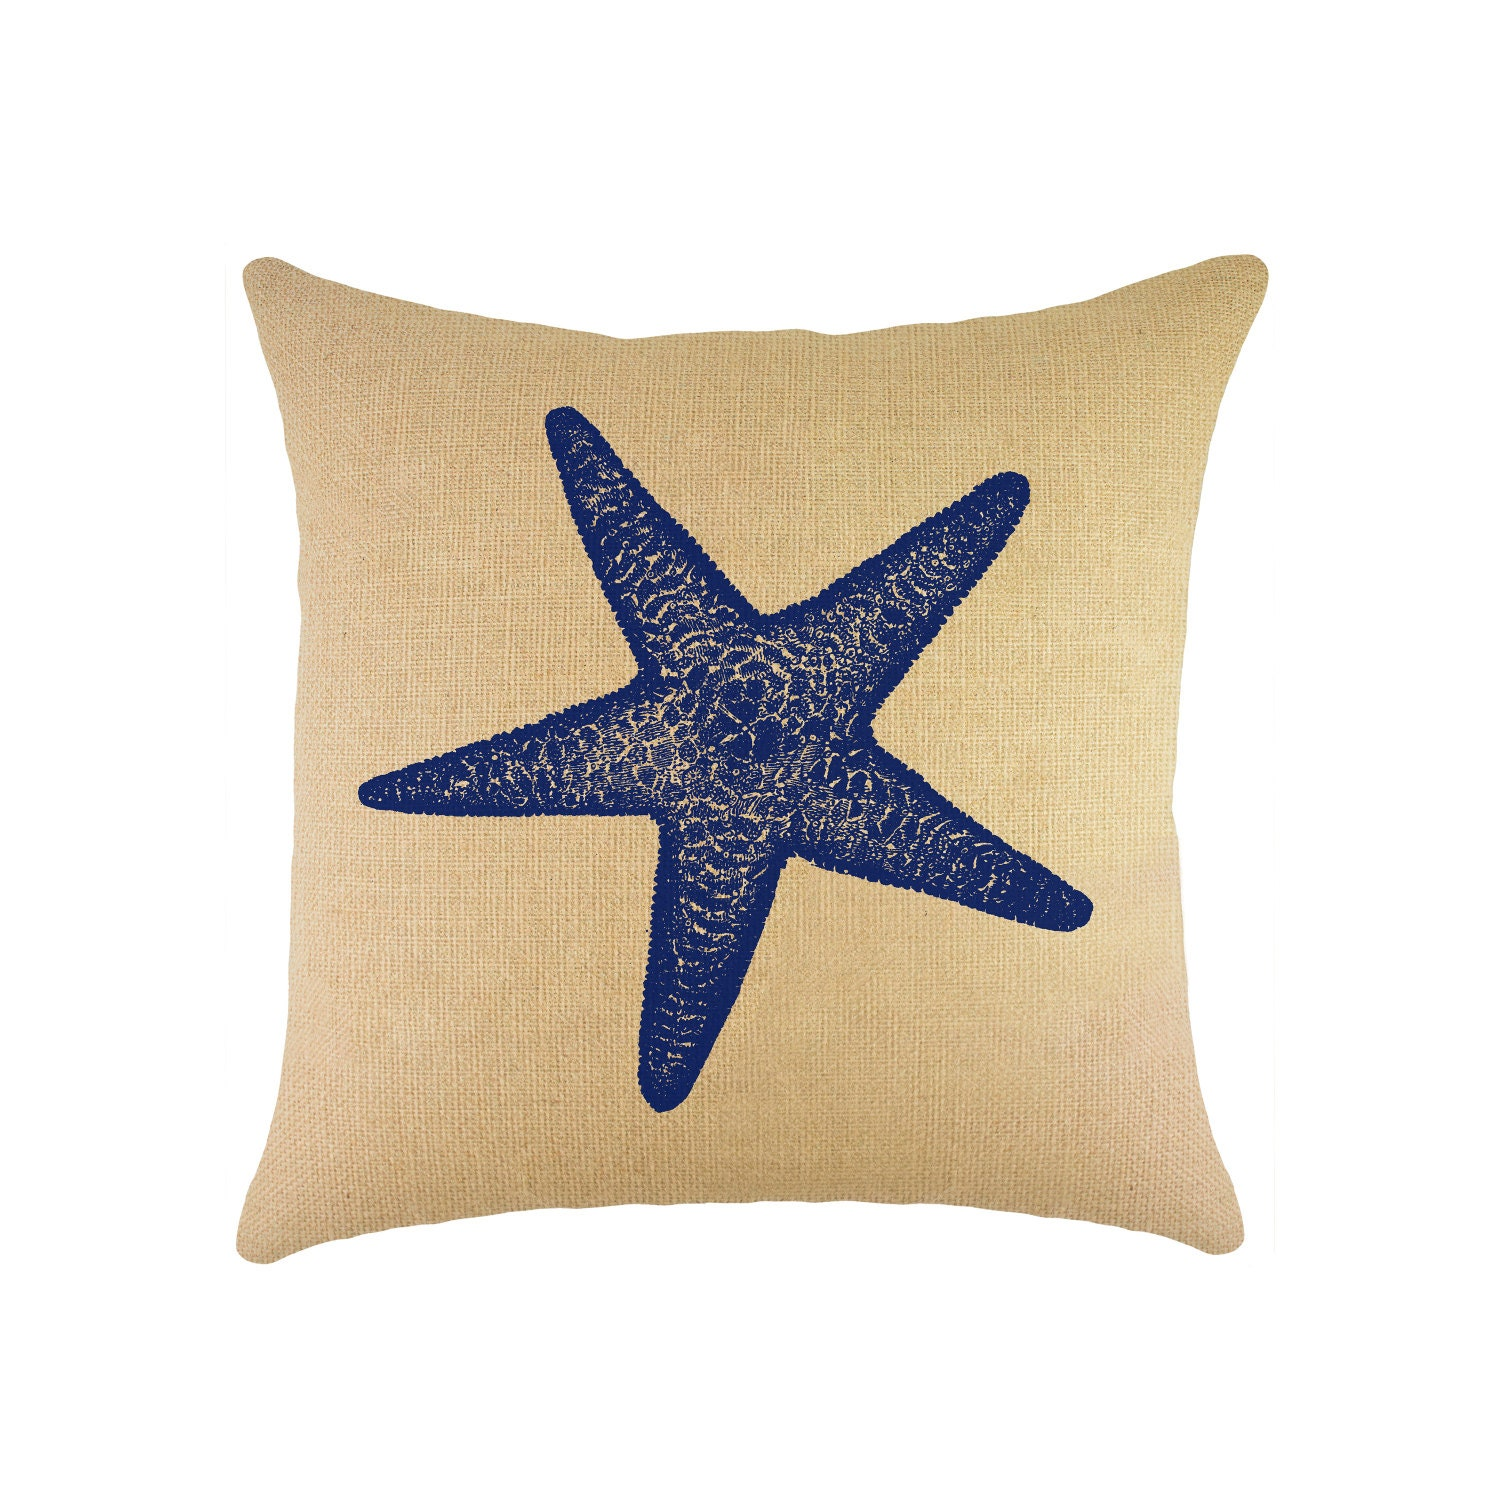 Throw Pillows Nordstrom : Starfish Burlap Pillow 16, Nautical Throw Pillow